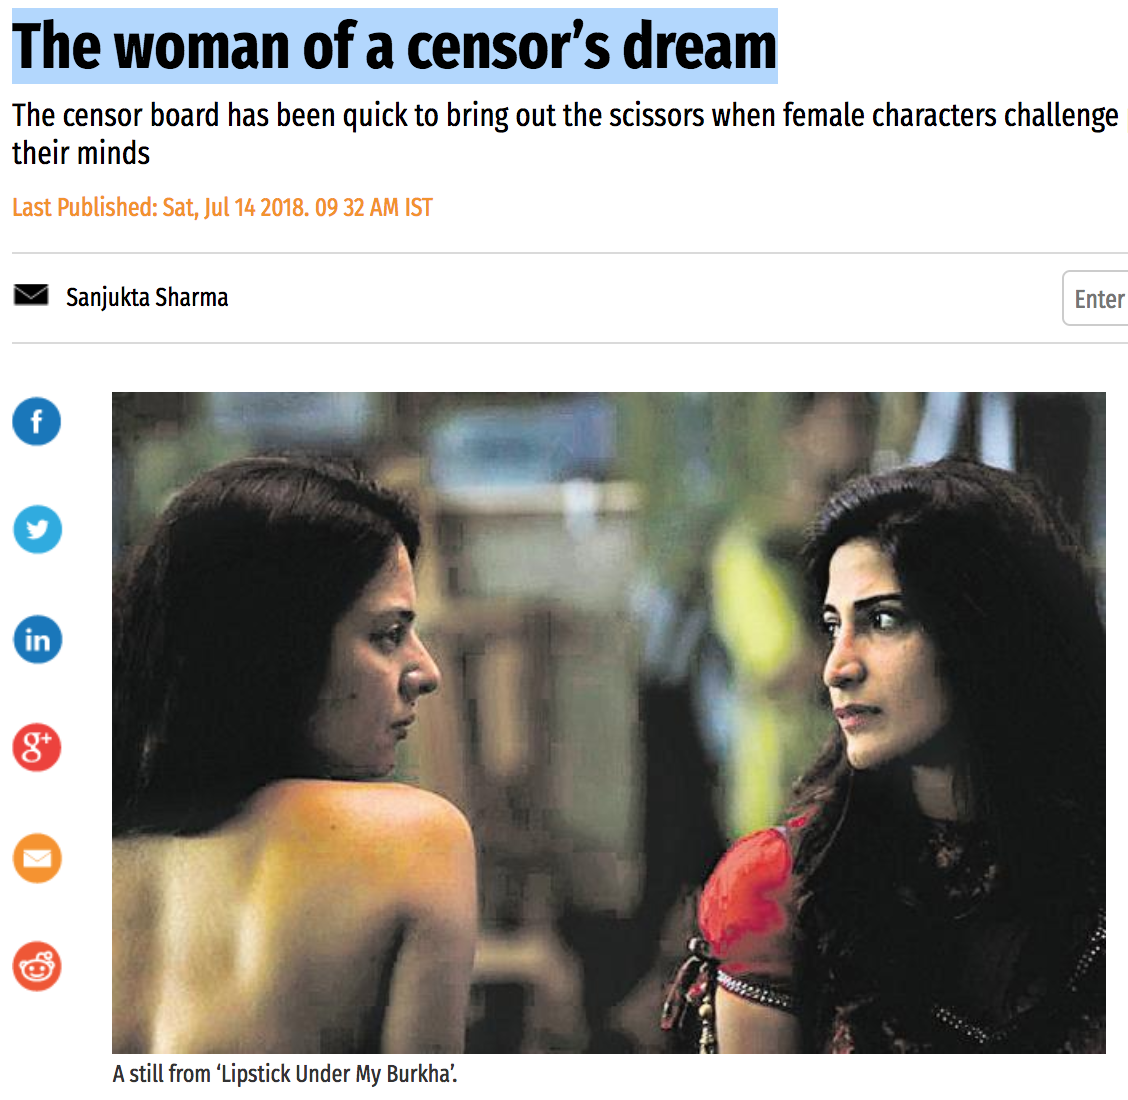 The woman of a censor's dream